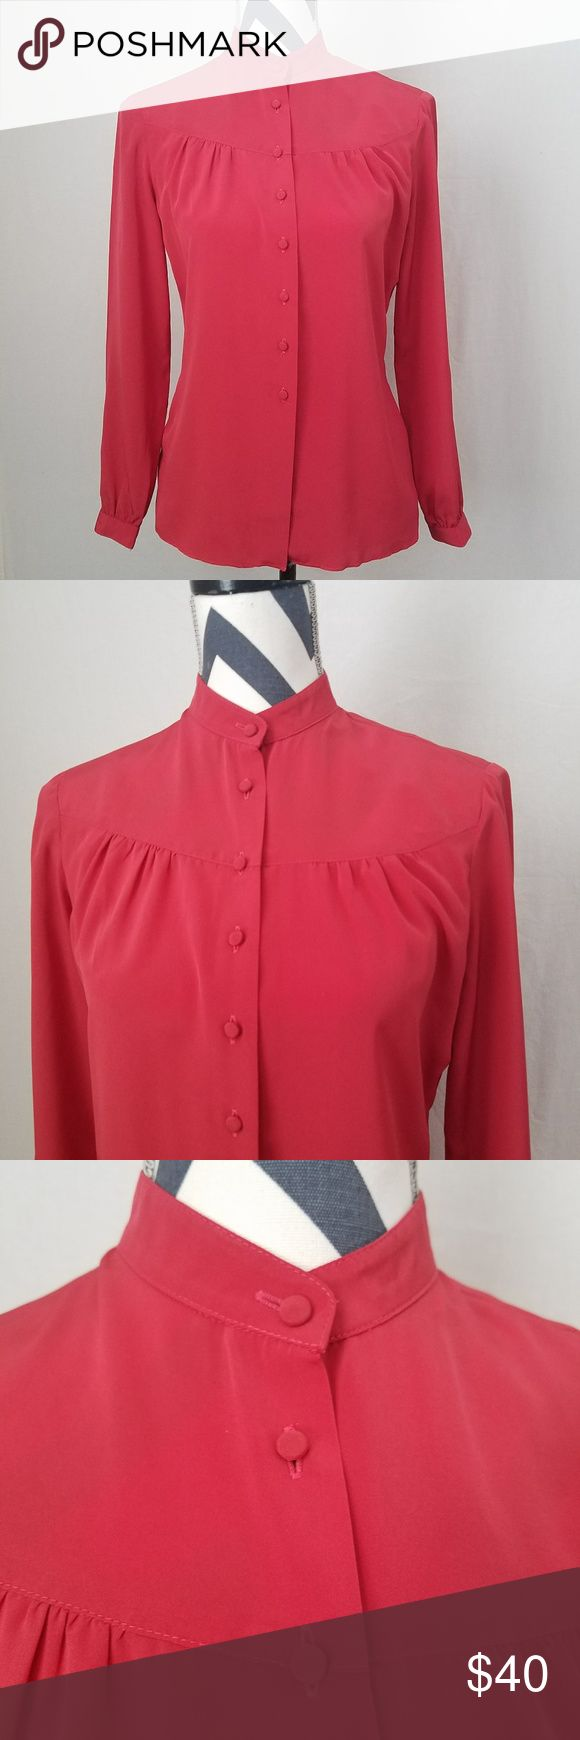 "VINTAGE 70's St. John Blouse BEAUTIFUL Vintage 70's St. John blouse in a bold, brick red. This fabulous top features buttons down the front in the same red polyester fabric, a mandarin collar, long sleeves, and gathering across the bust and back. All these features come together to give this blouse a very Victorian feel.  size 6 39"" bust 25"" length 22.5"" sleeves measured from the shoulder seam Some very light spots located at underarms, but they are very faint. If it weren't for these spots…"